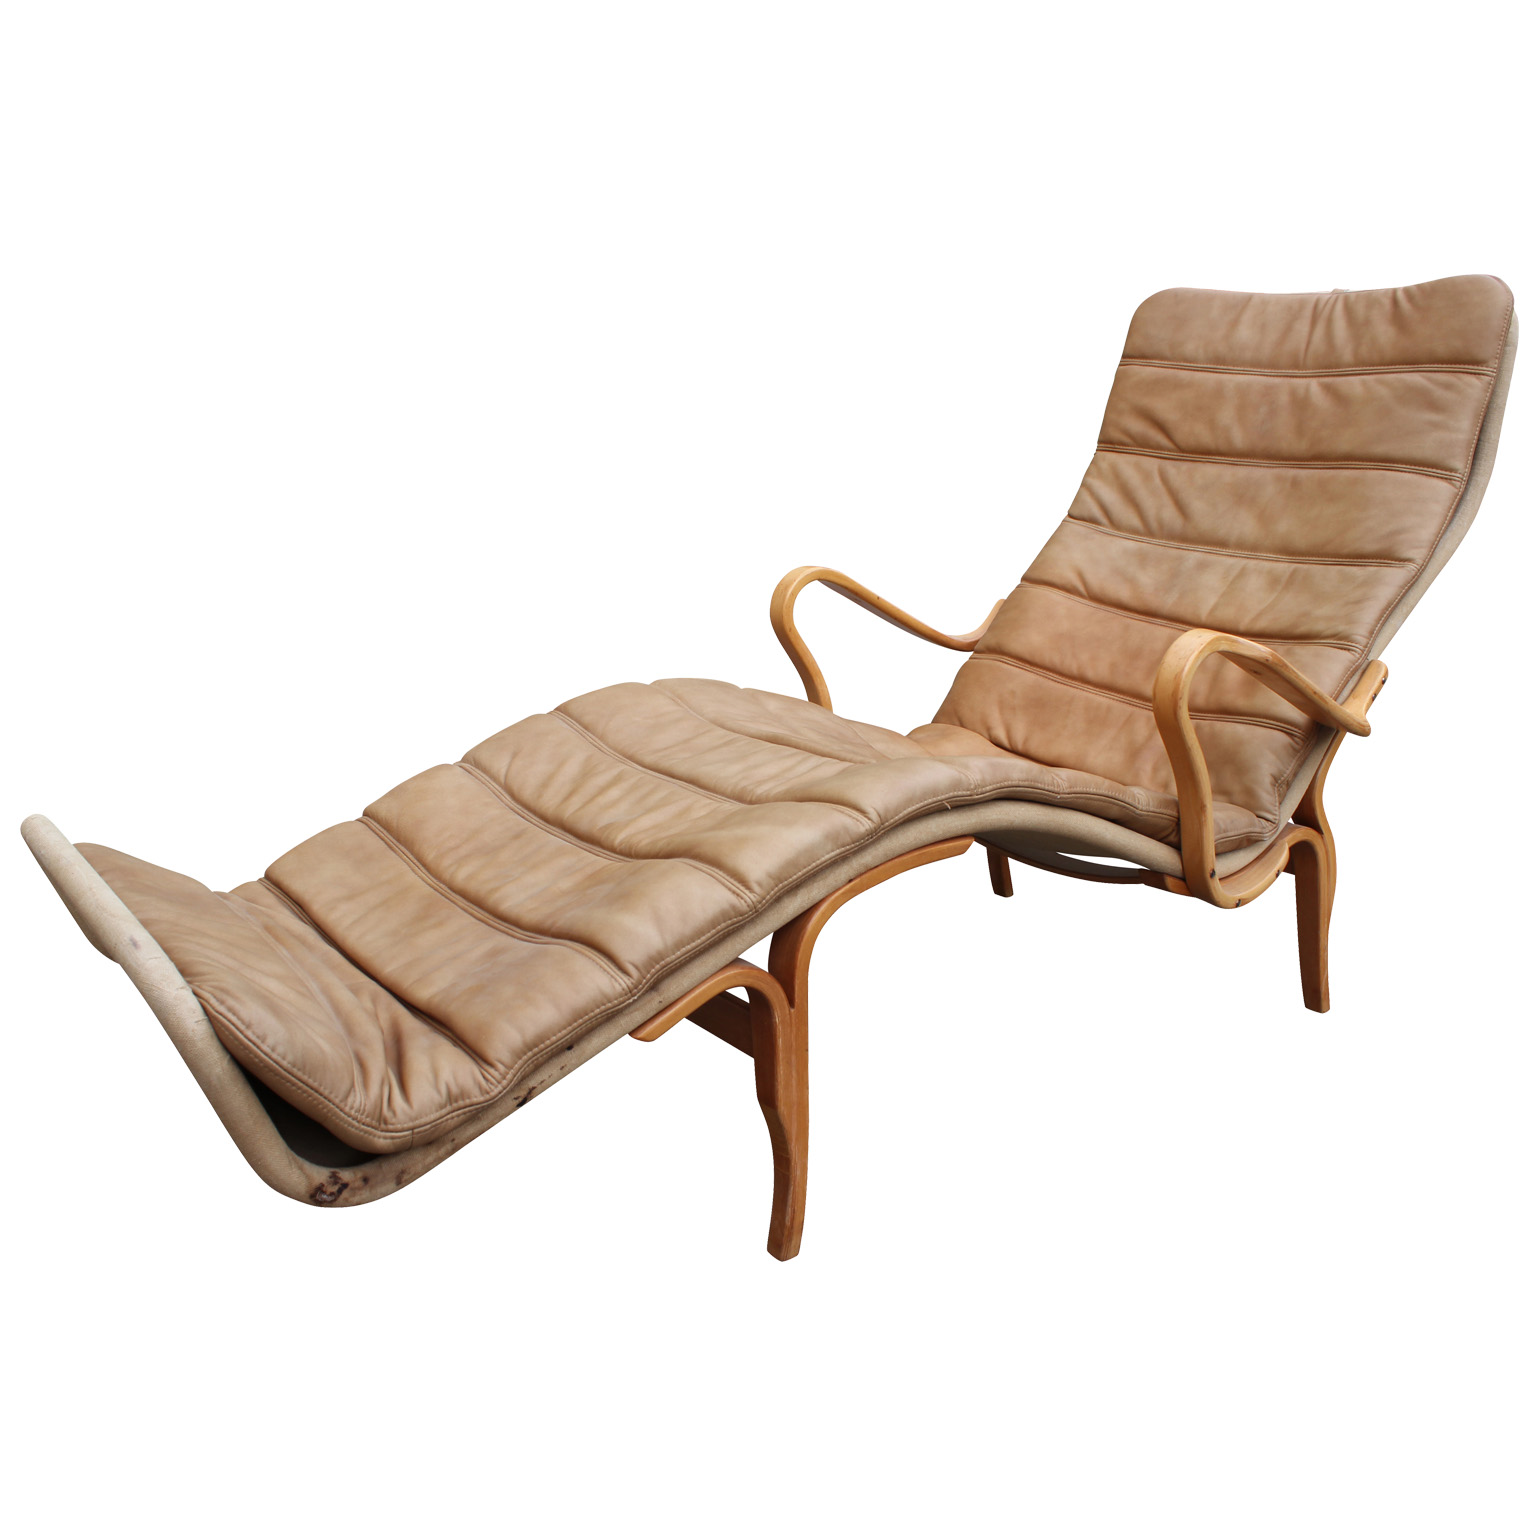 Bruno mathsson for dux pernille 3 chaise lounge chair in for Blue leather chaise lounge